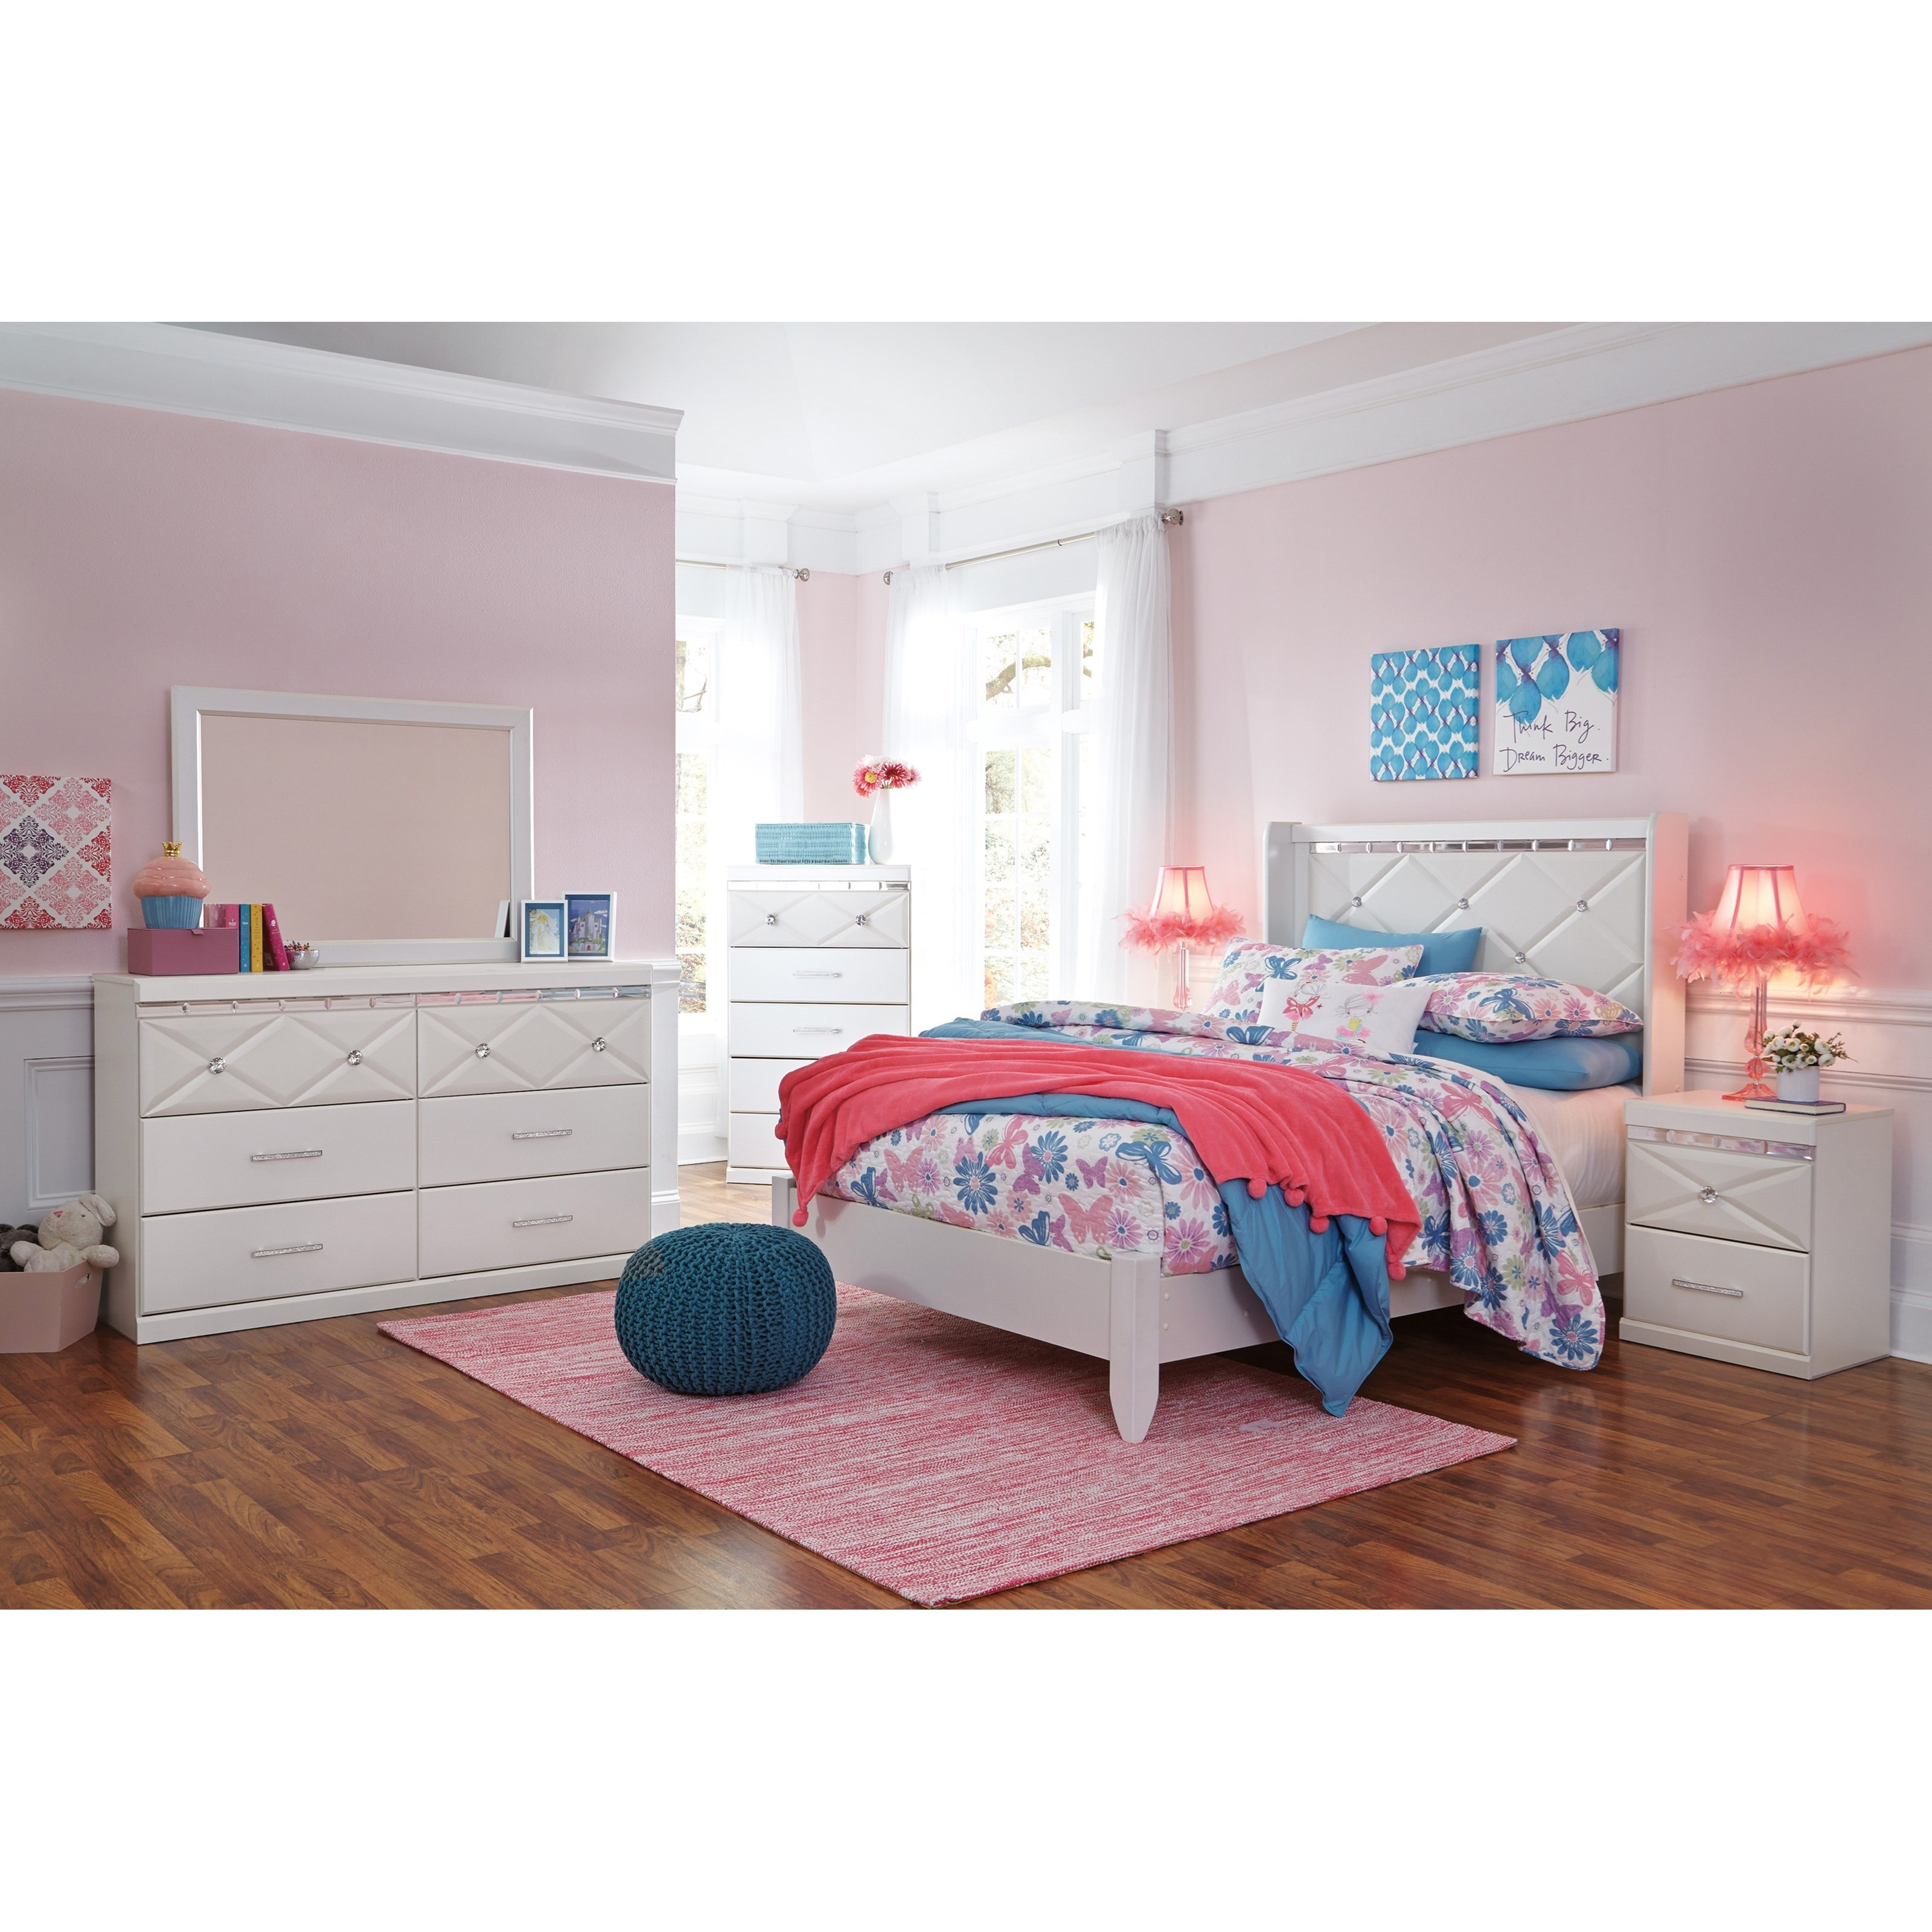 Signature design by ashley dreamur full panel bed with - Ashley furniture full bedroom sets ...